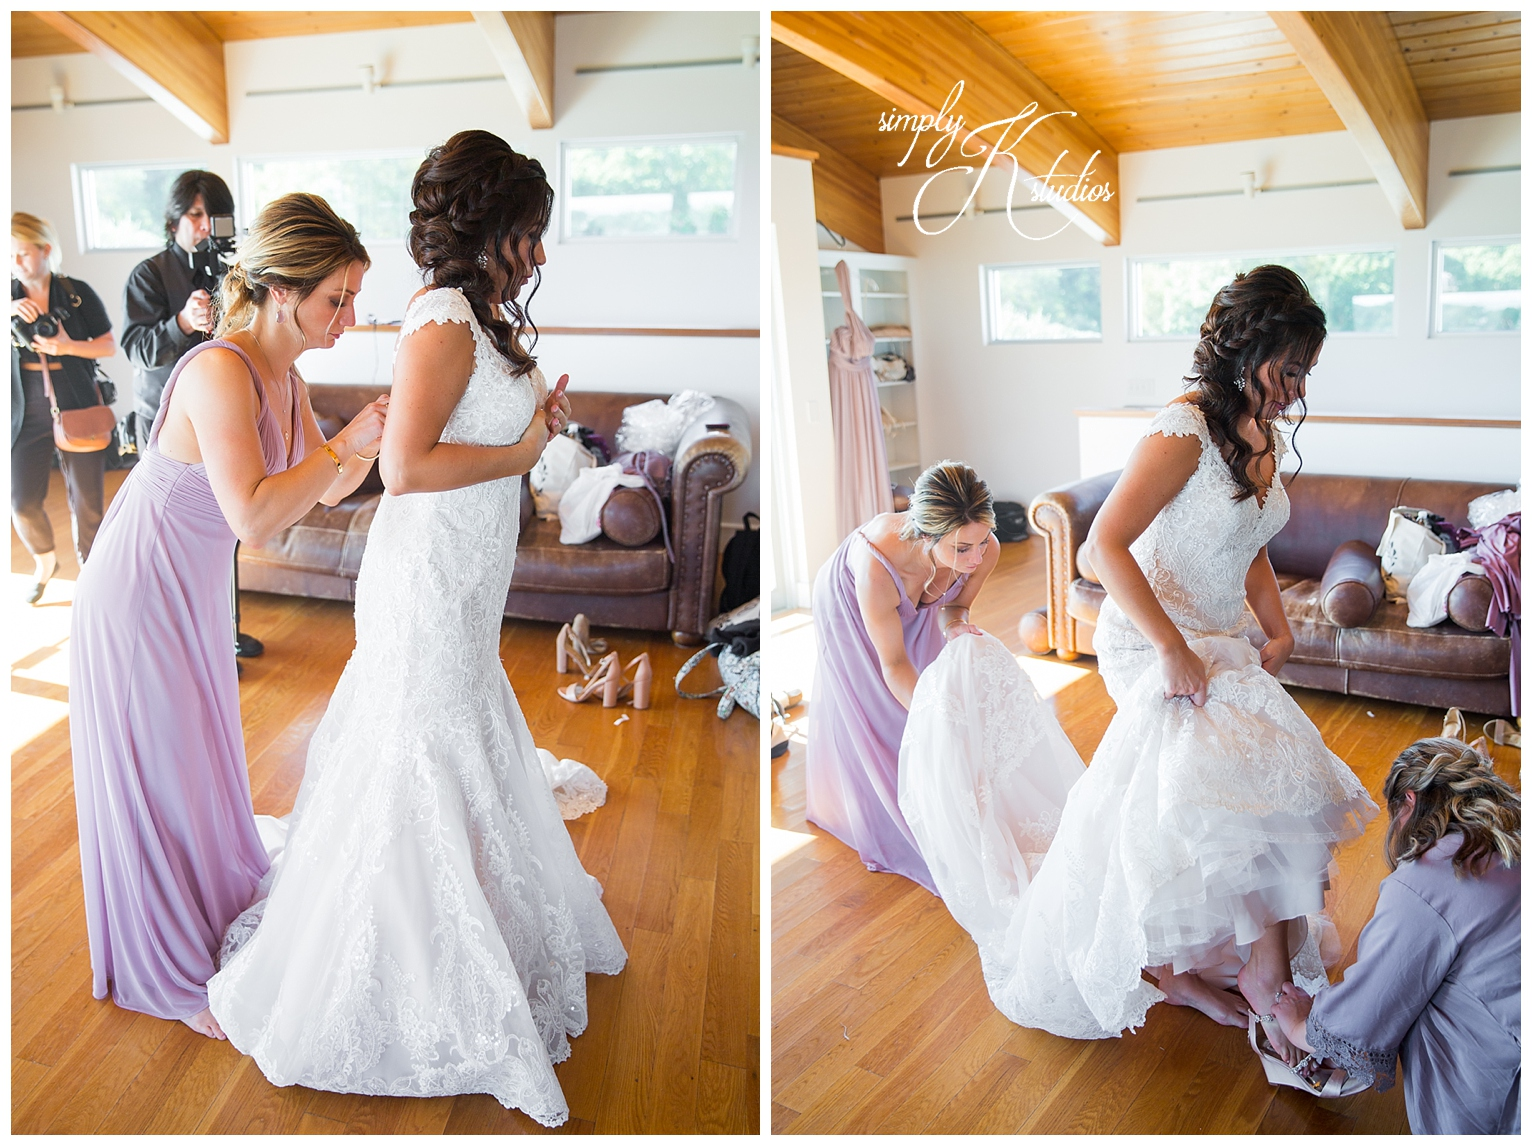 26 Getting Ready Photos at Saltwater Farm Vineyard.jpg